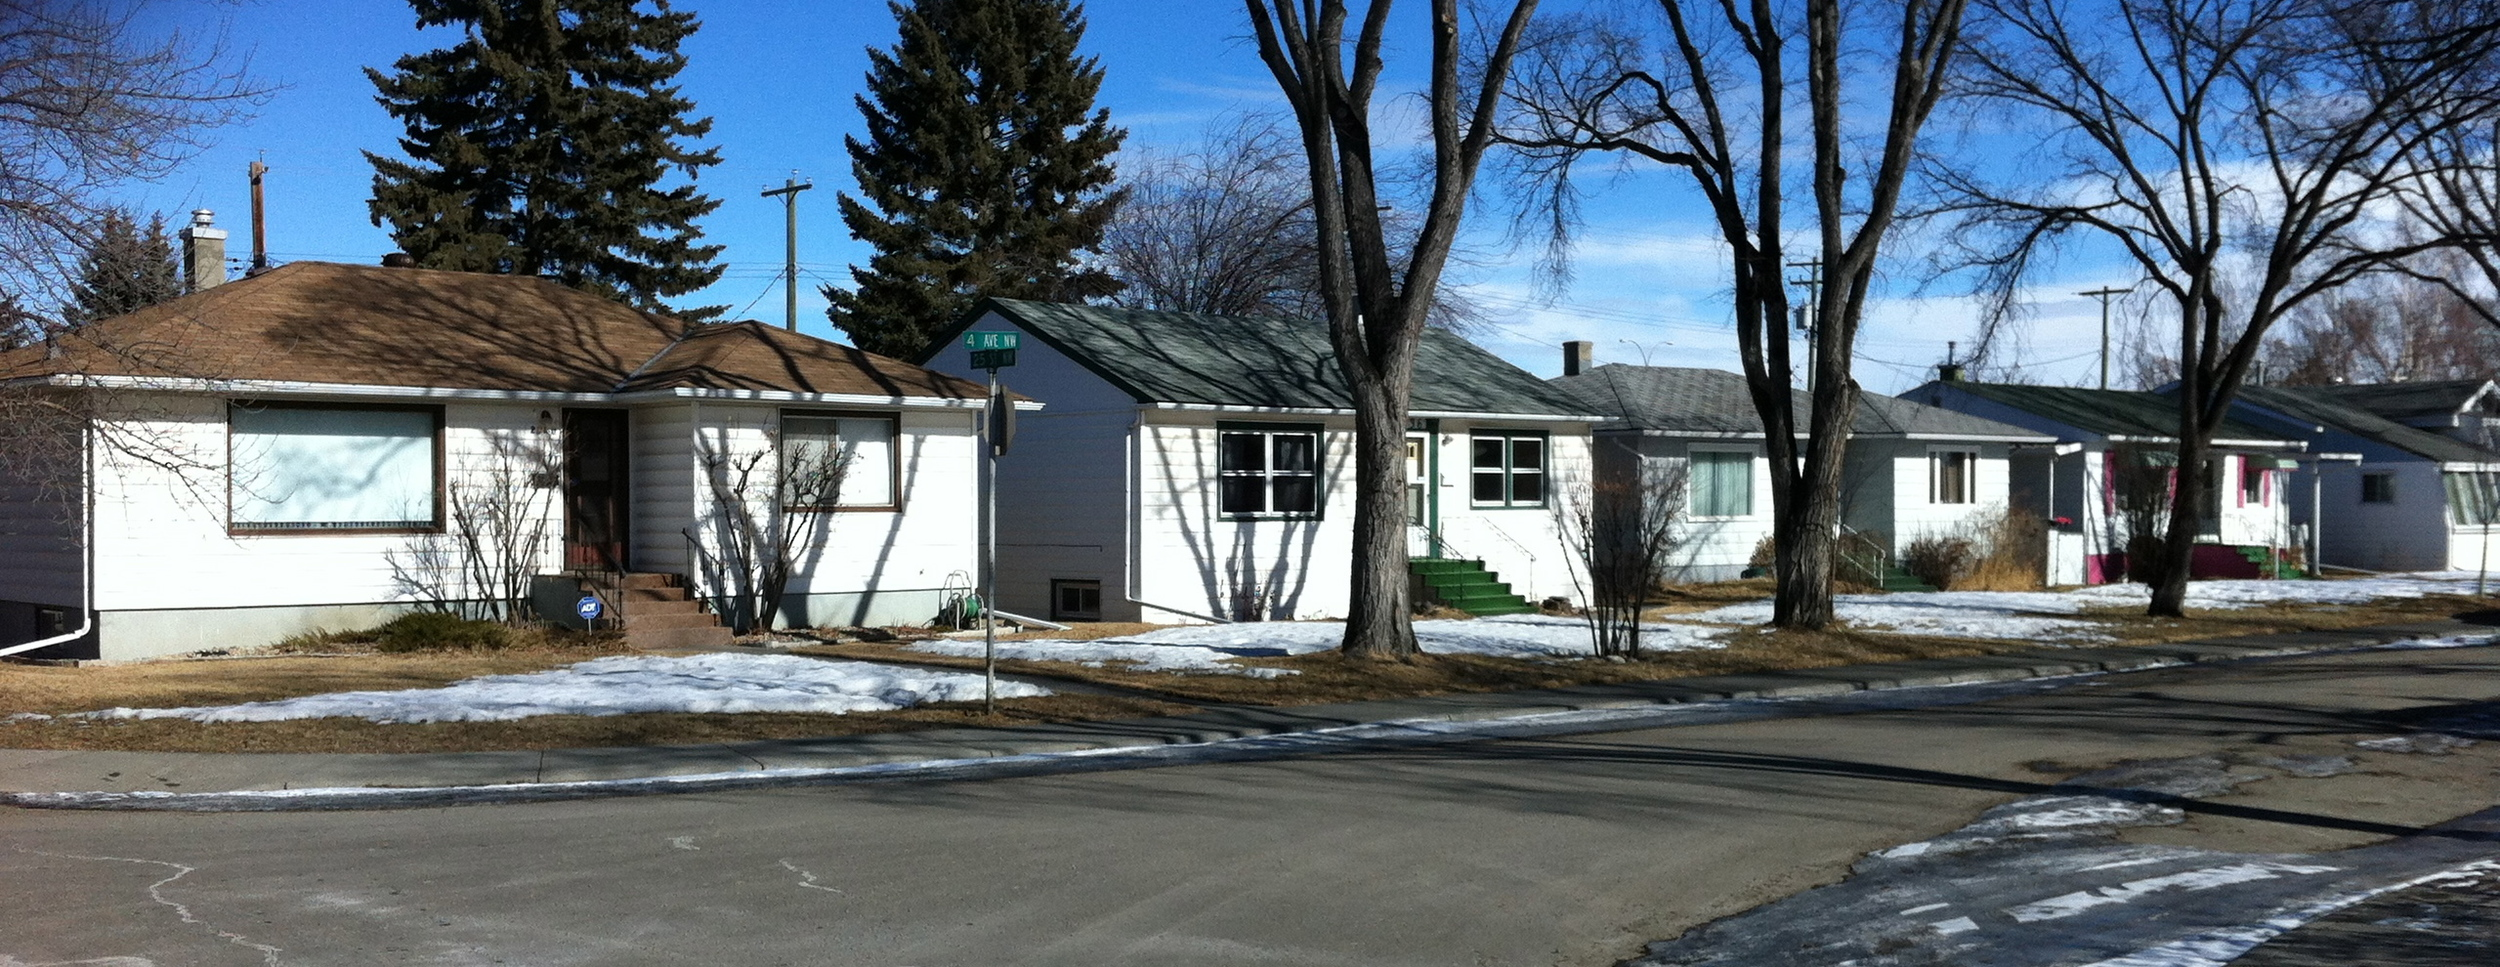 A street in West Hillhurst where all of the mid-century homes are still intact.